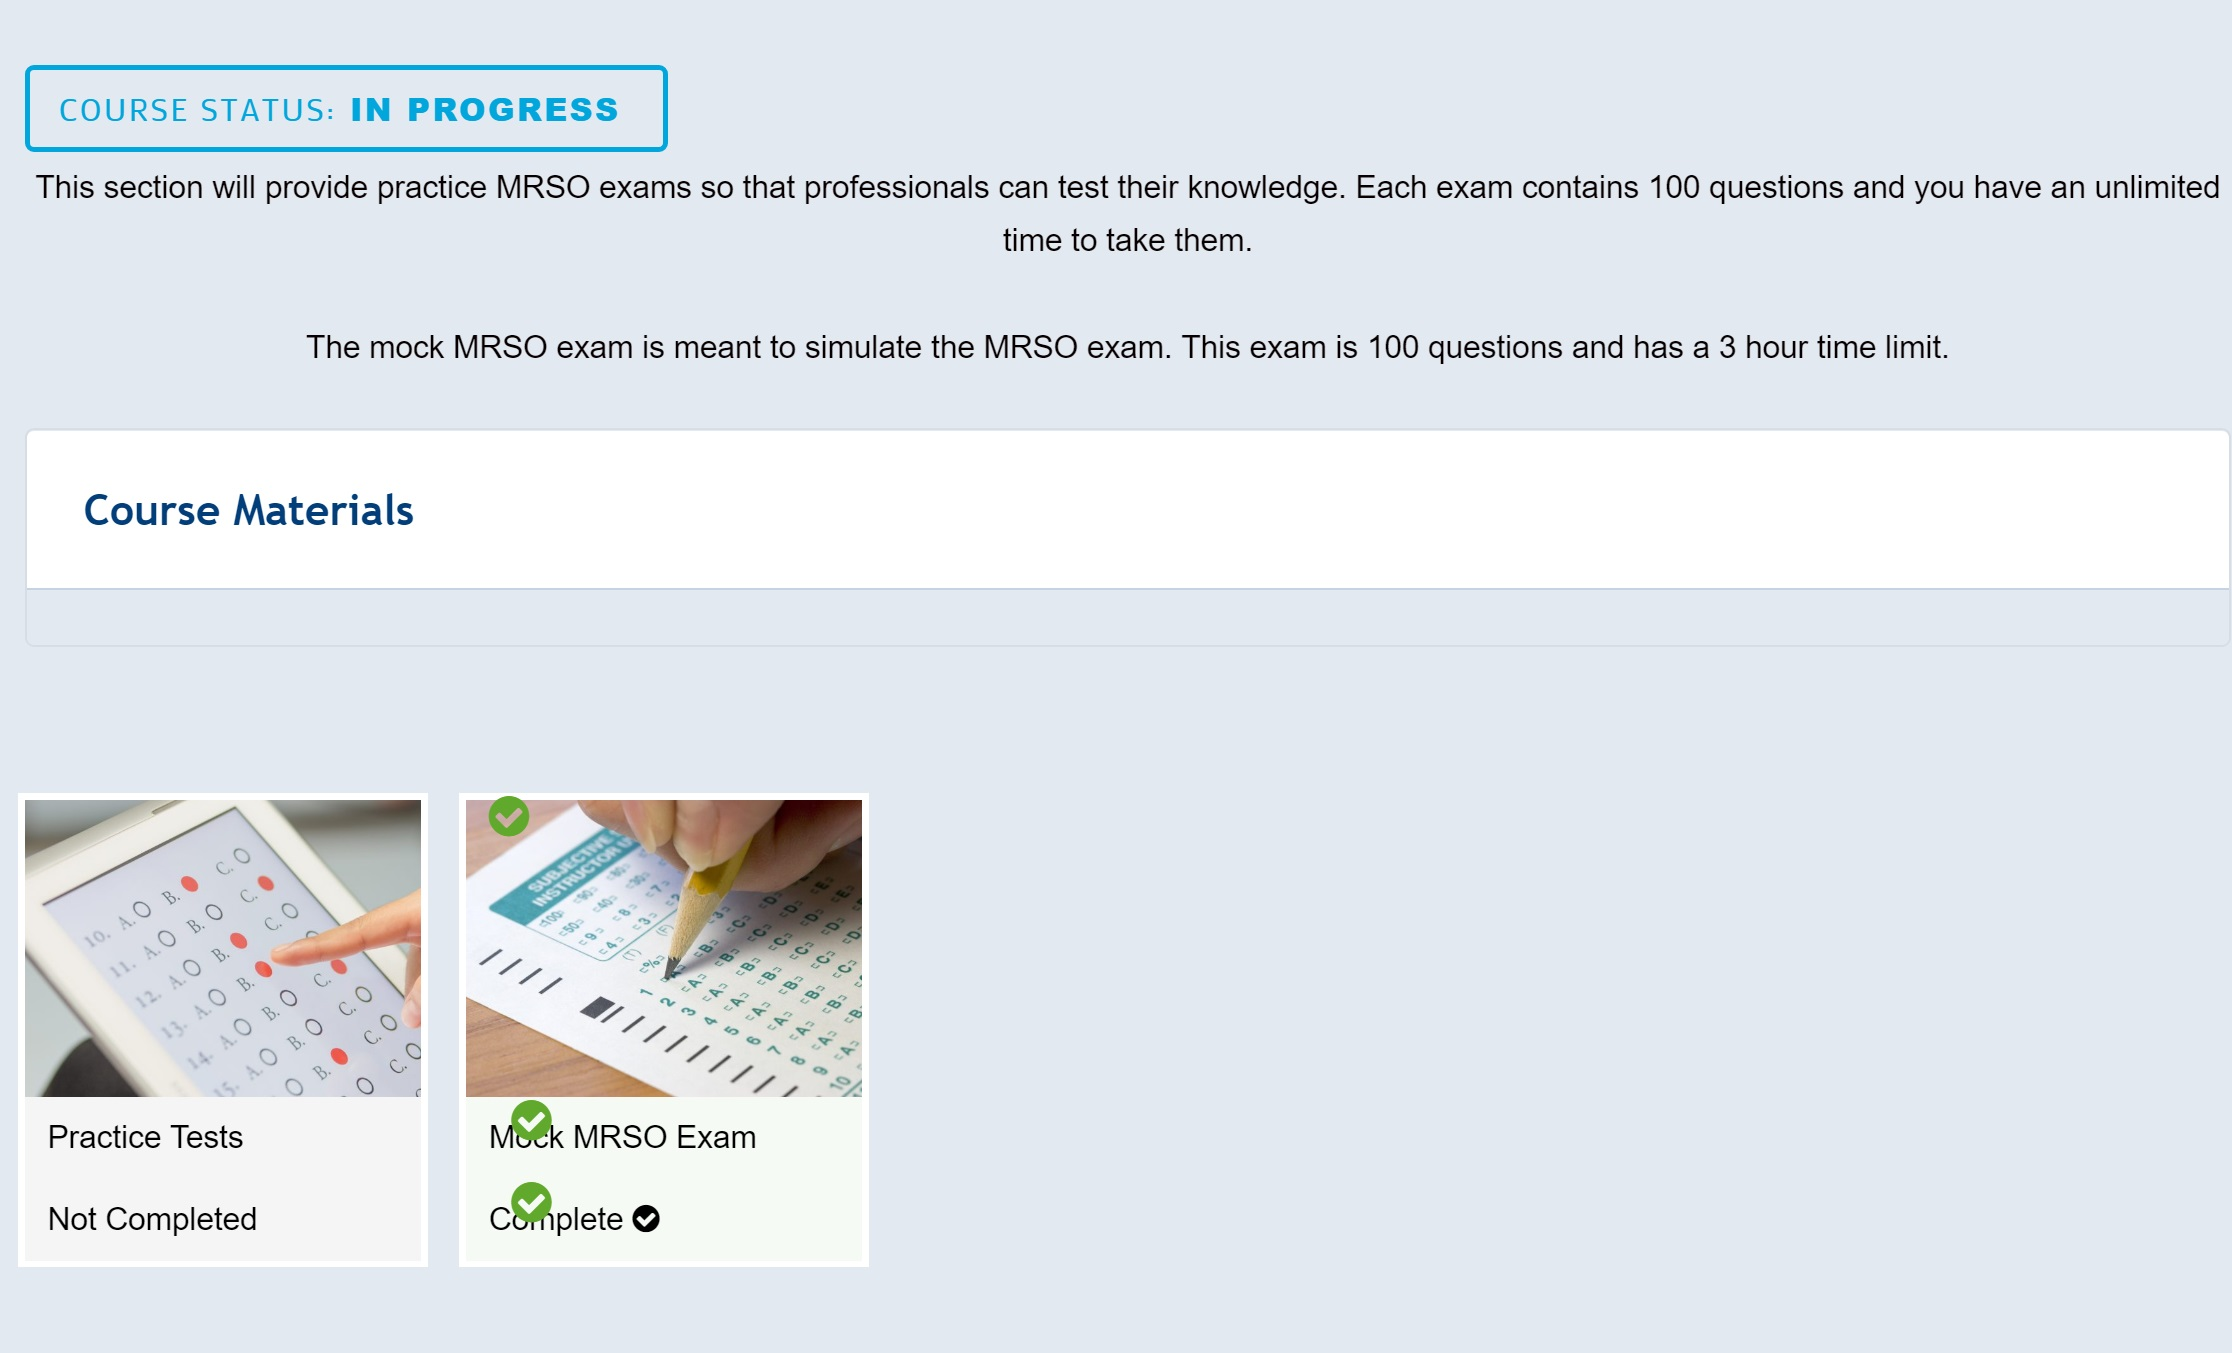 MRSO Online Training Exam l Prepare For MRI Education - Sign Up Today